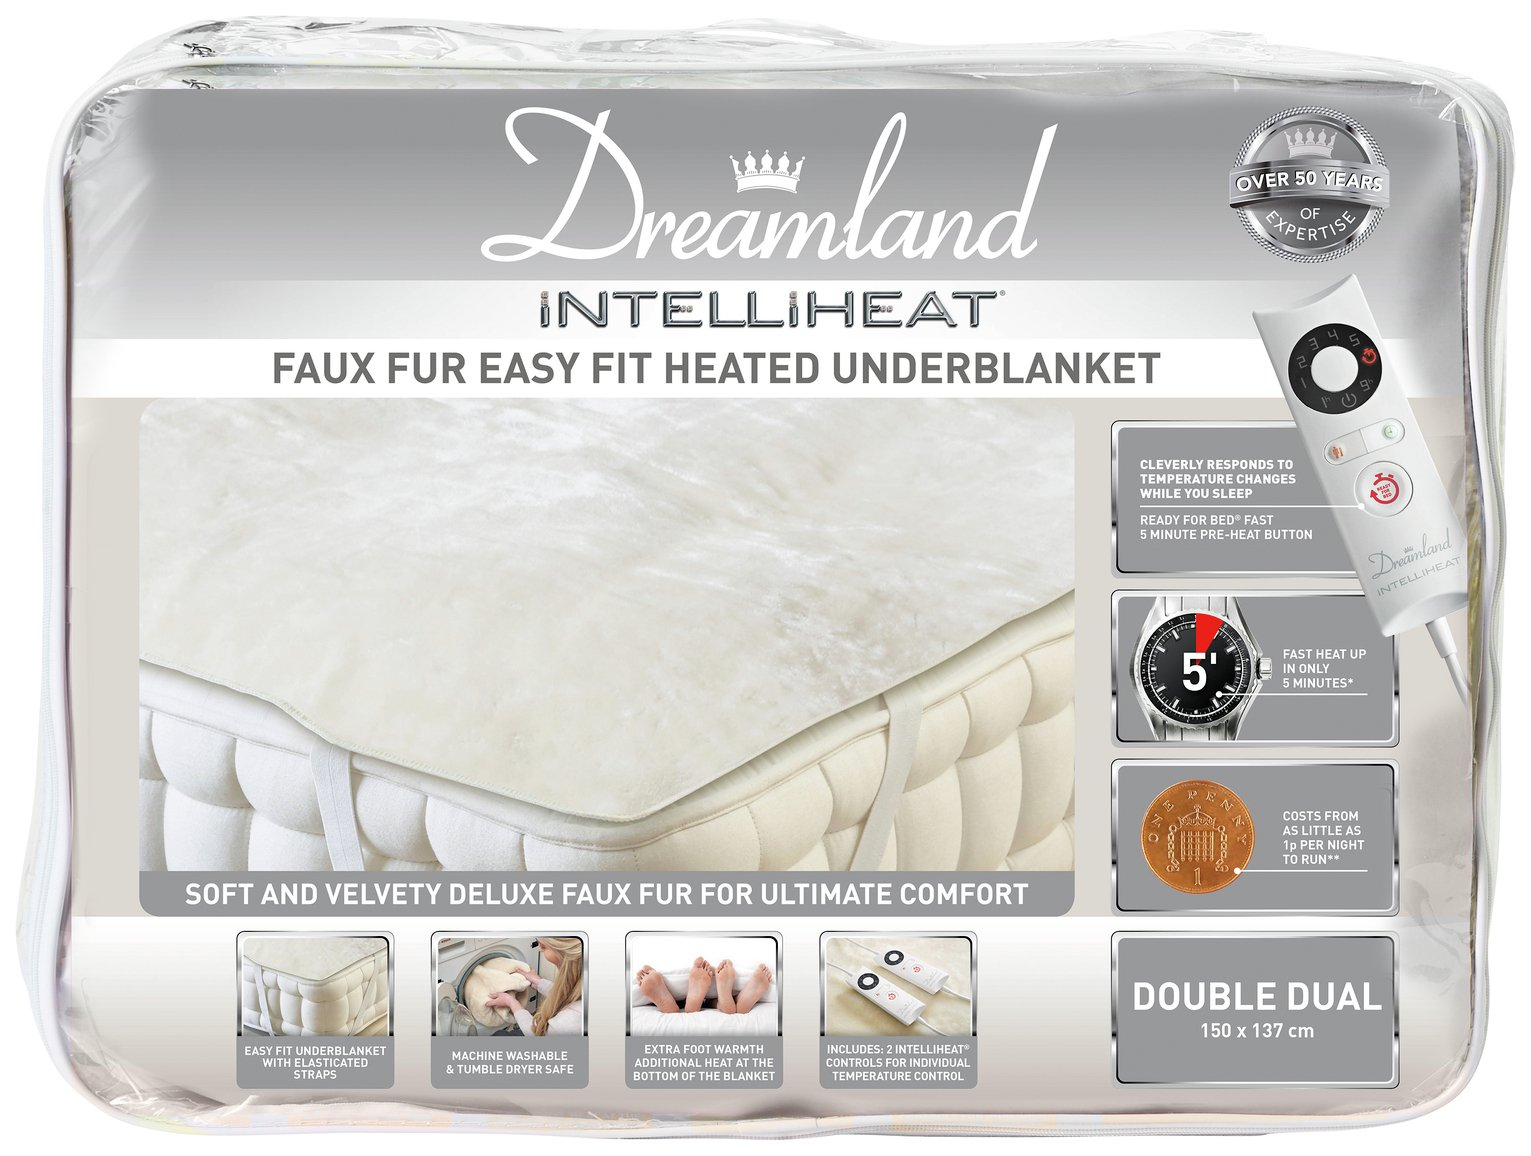 Dreamland Intelliheat Dual Control Electric Blanket - Double